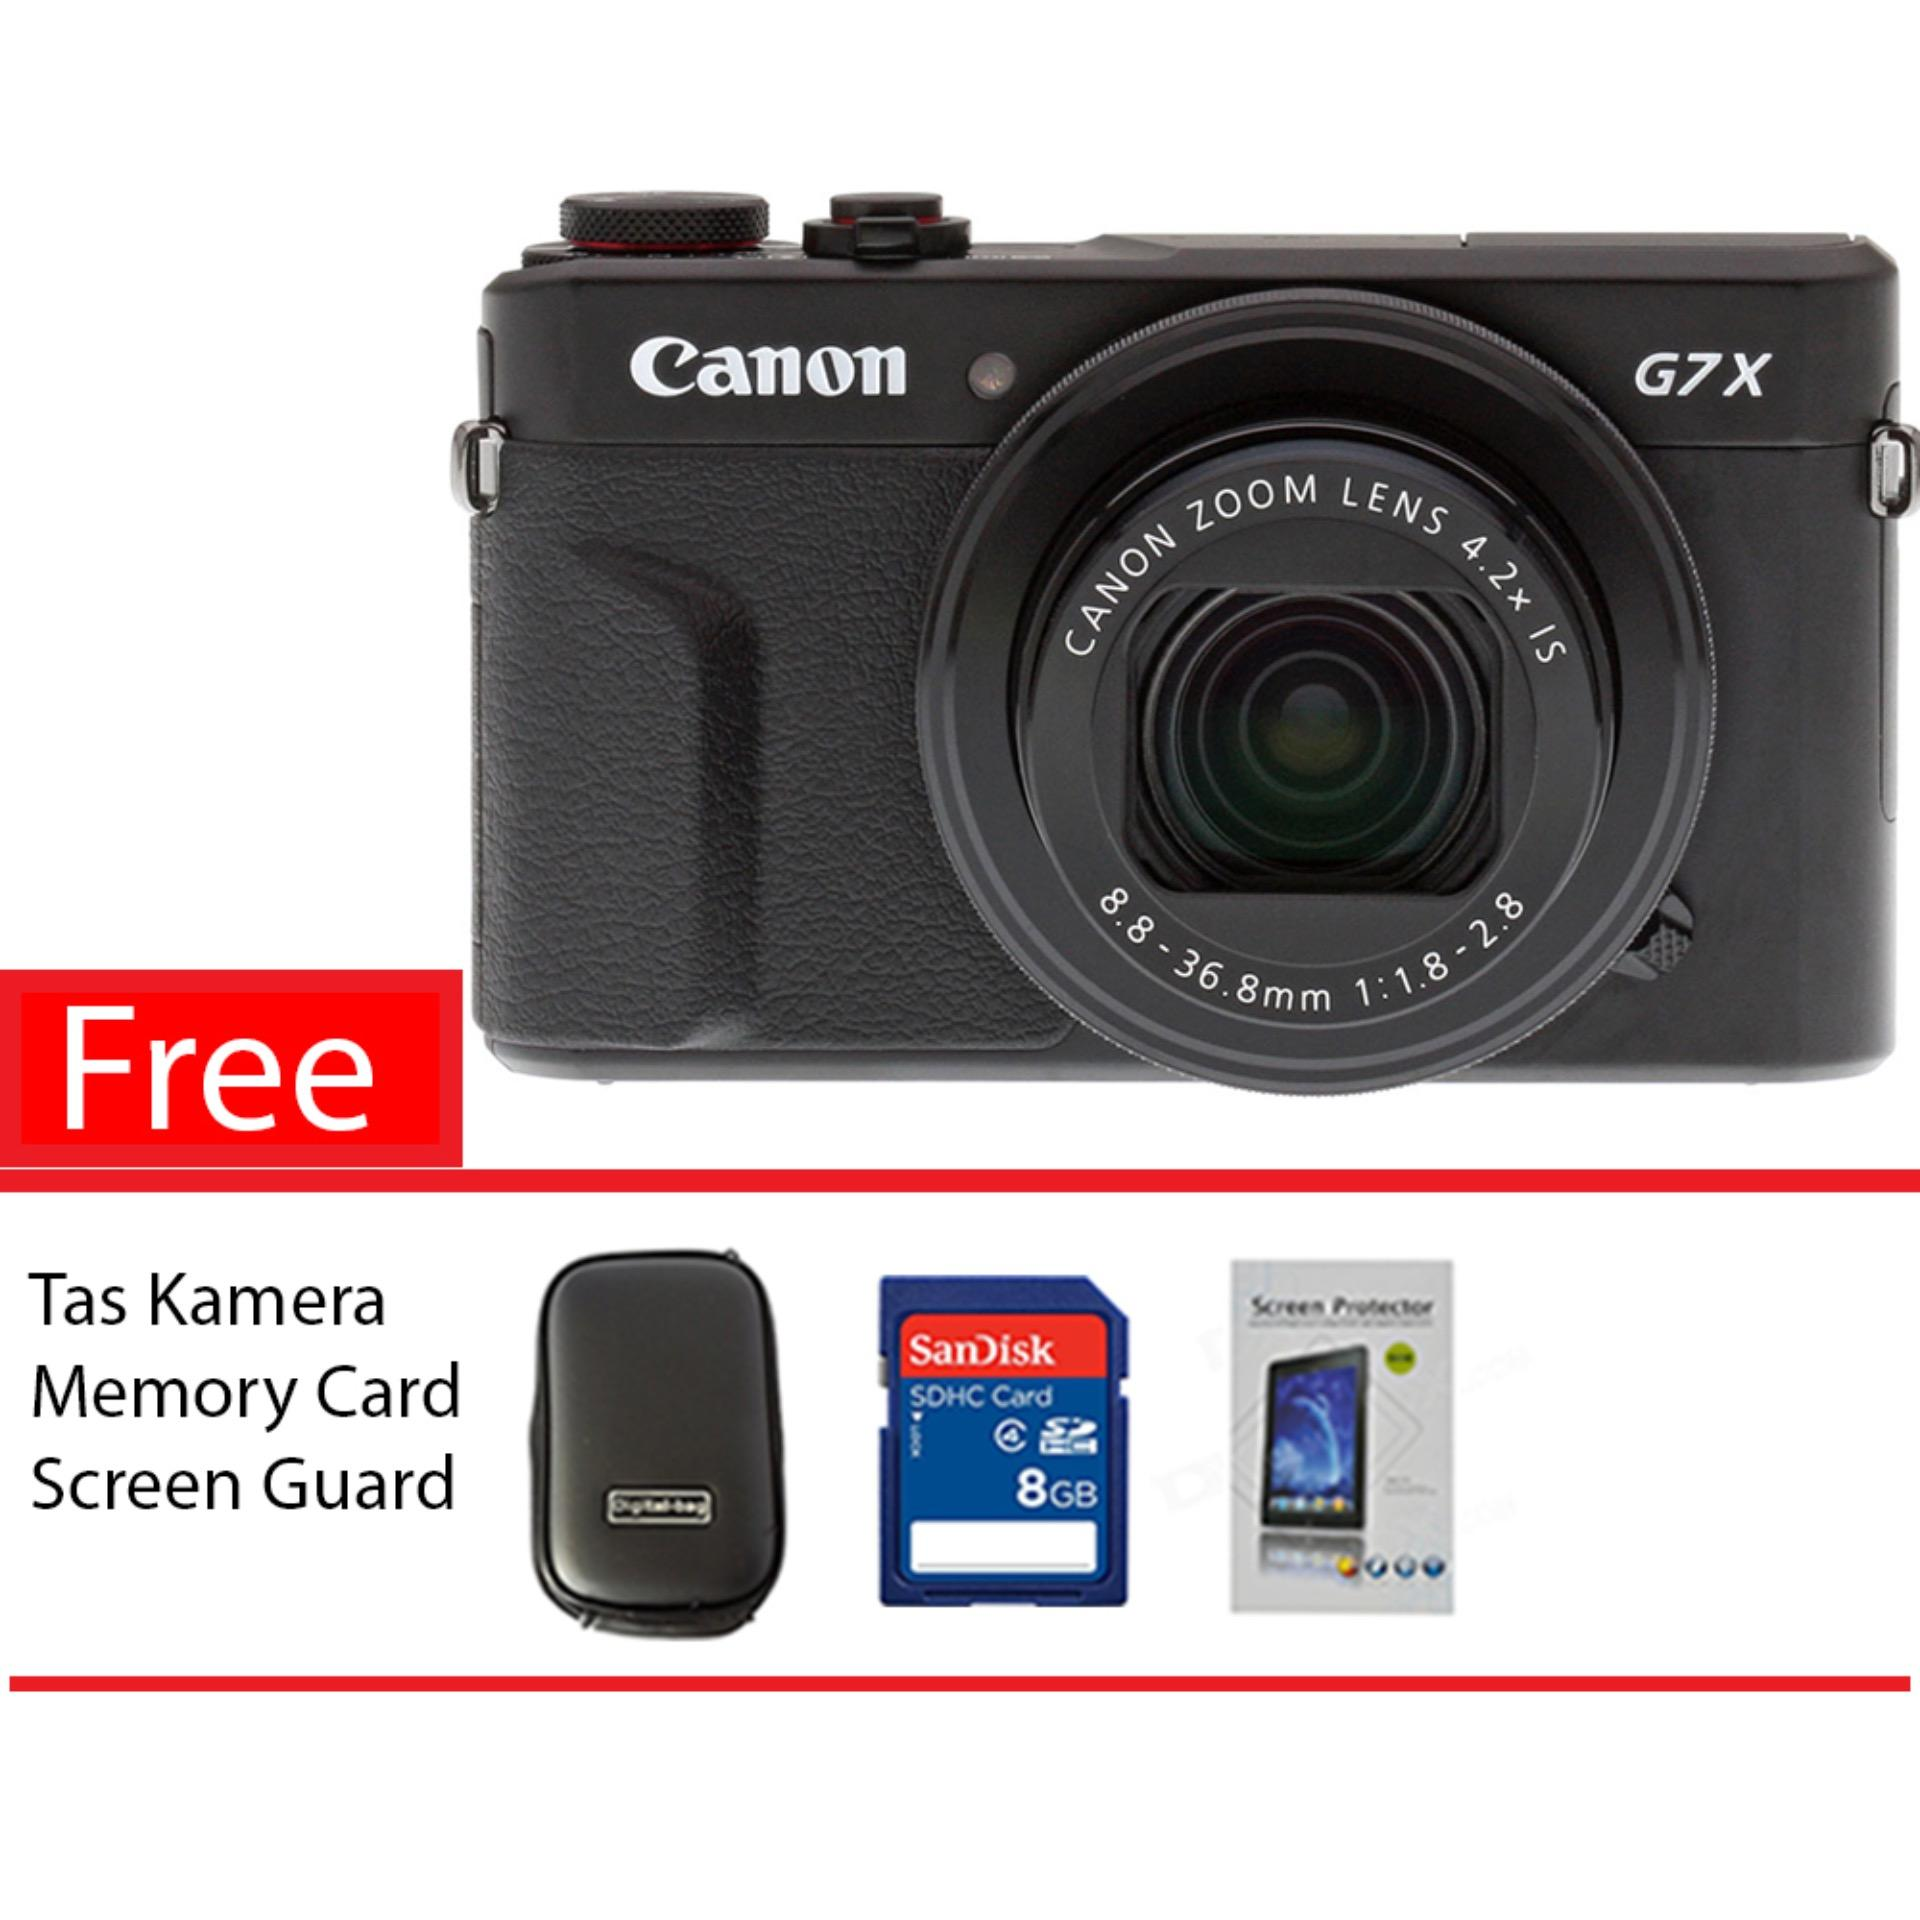 Jual Canon Powershot G7X Mark Ii 20 1Mp Digital Camera Hitam Free Memory Card Screen Guard Tas Kamera Canon Online